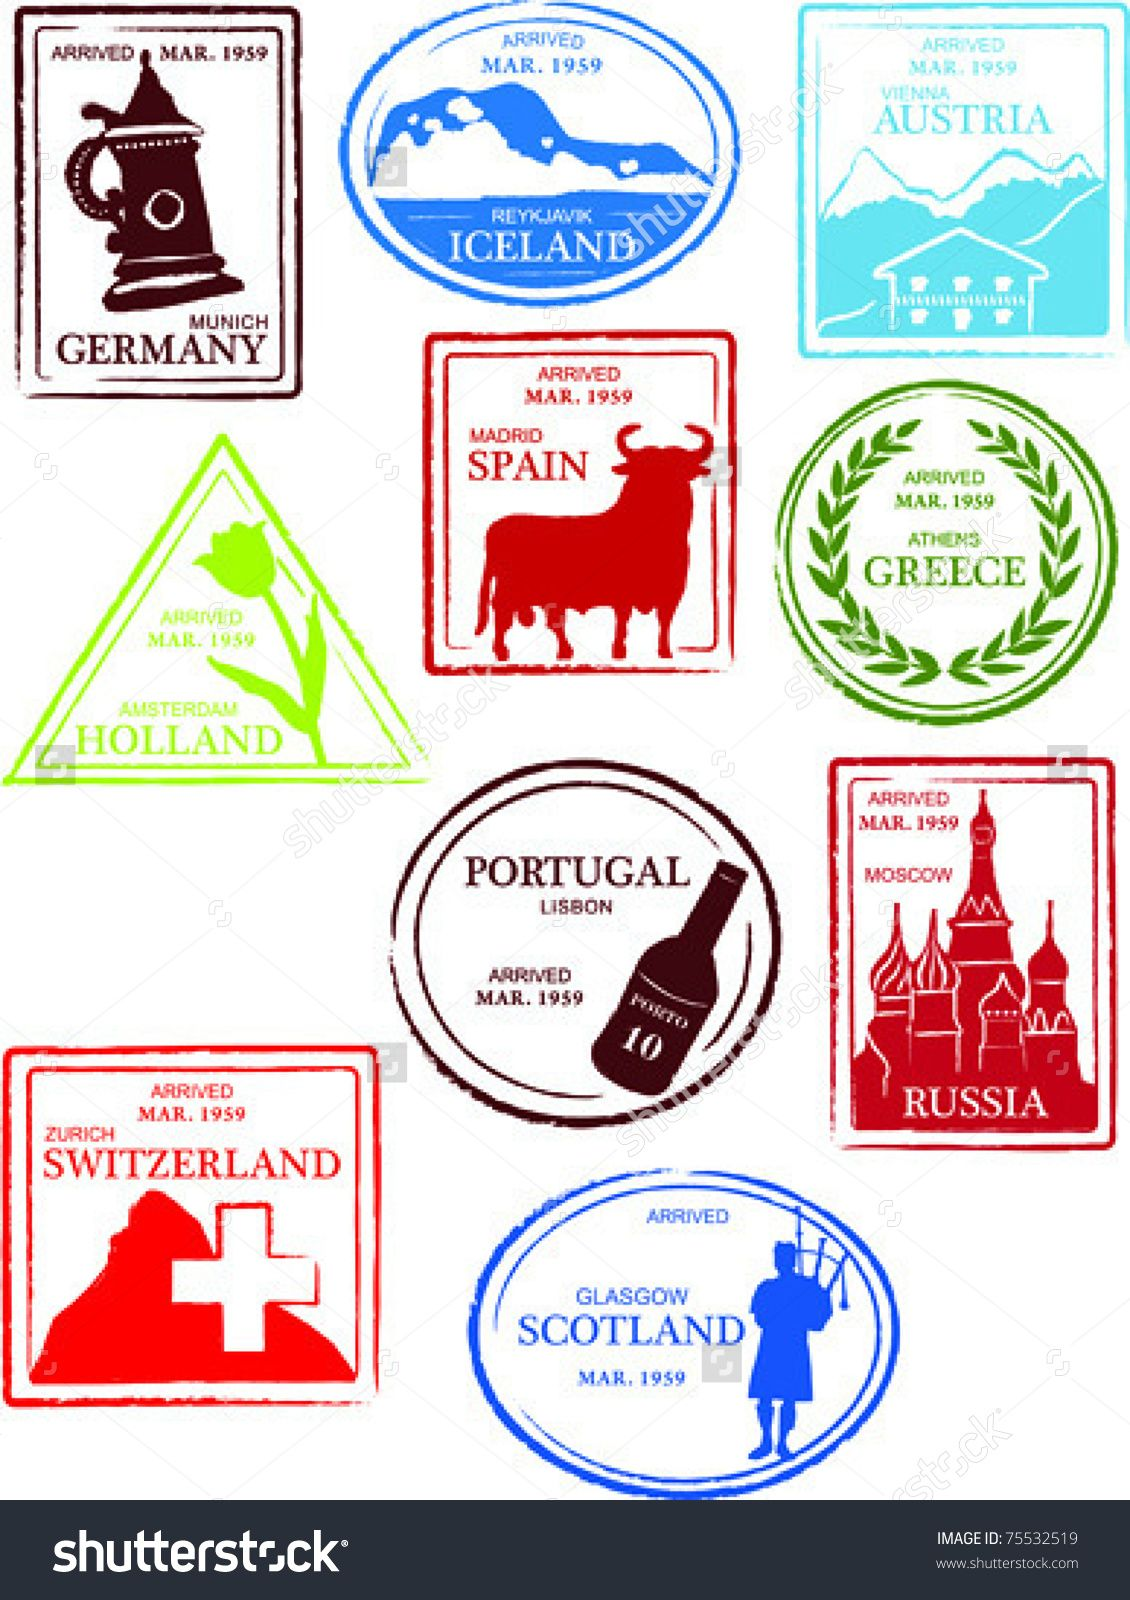 medium resolution of countries of the world passport stamps collect them all google search